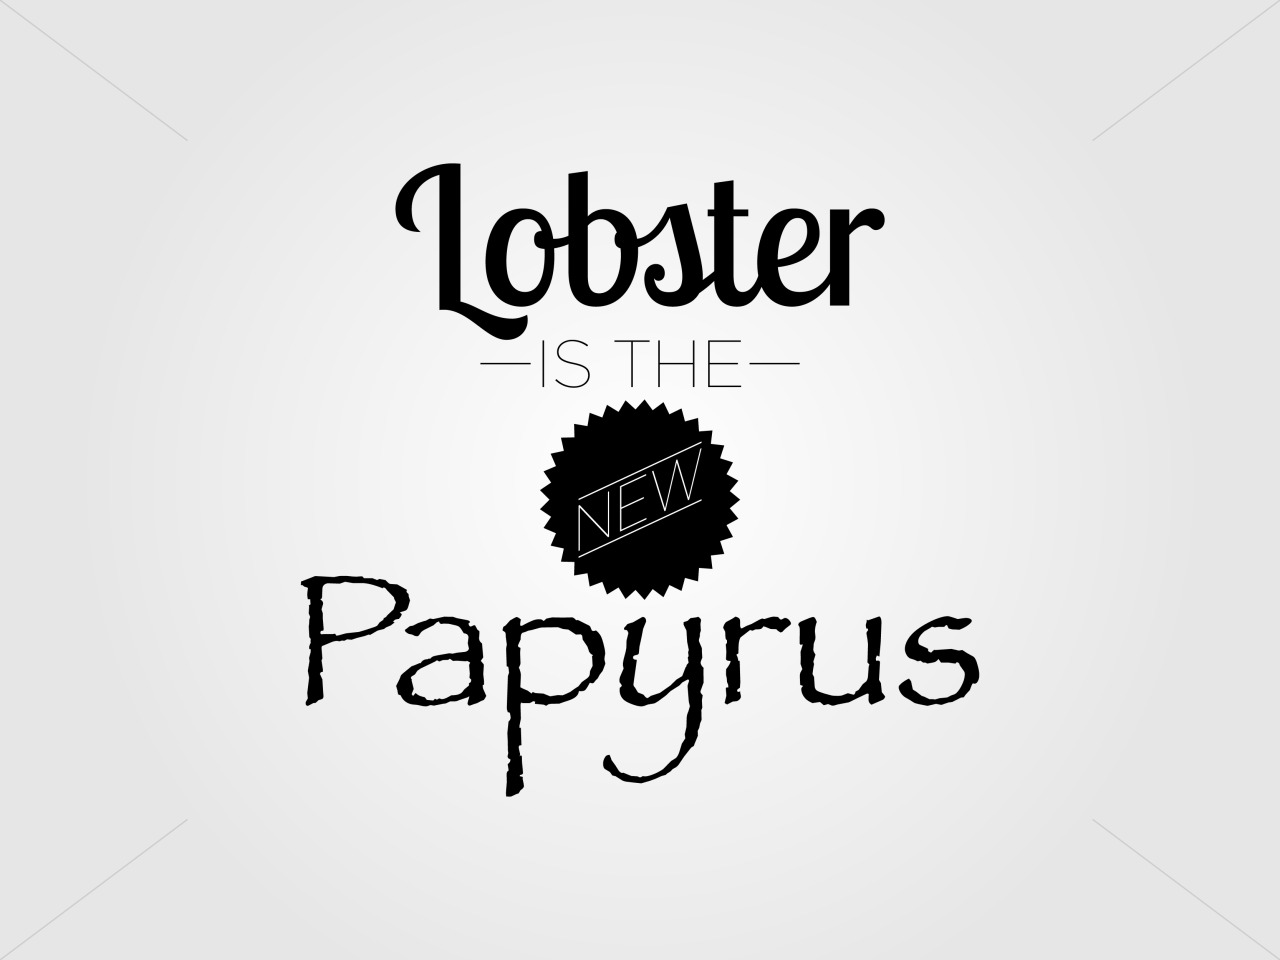 Lobster is the new Papyrus